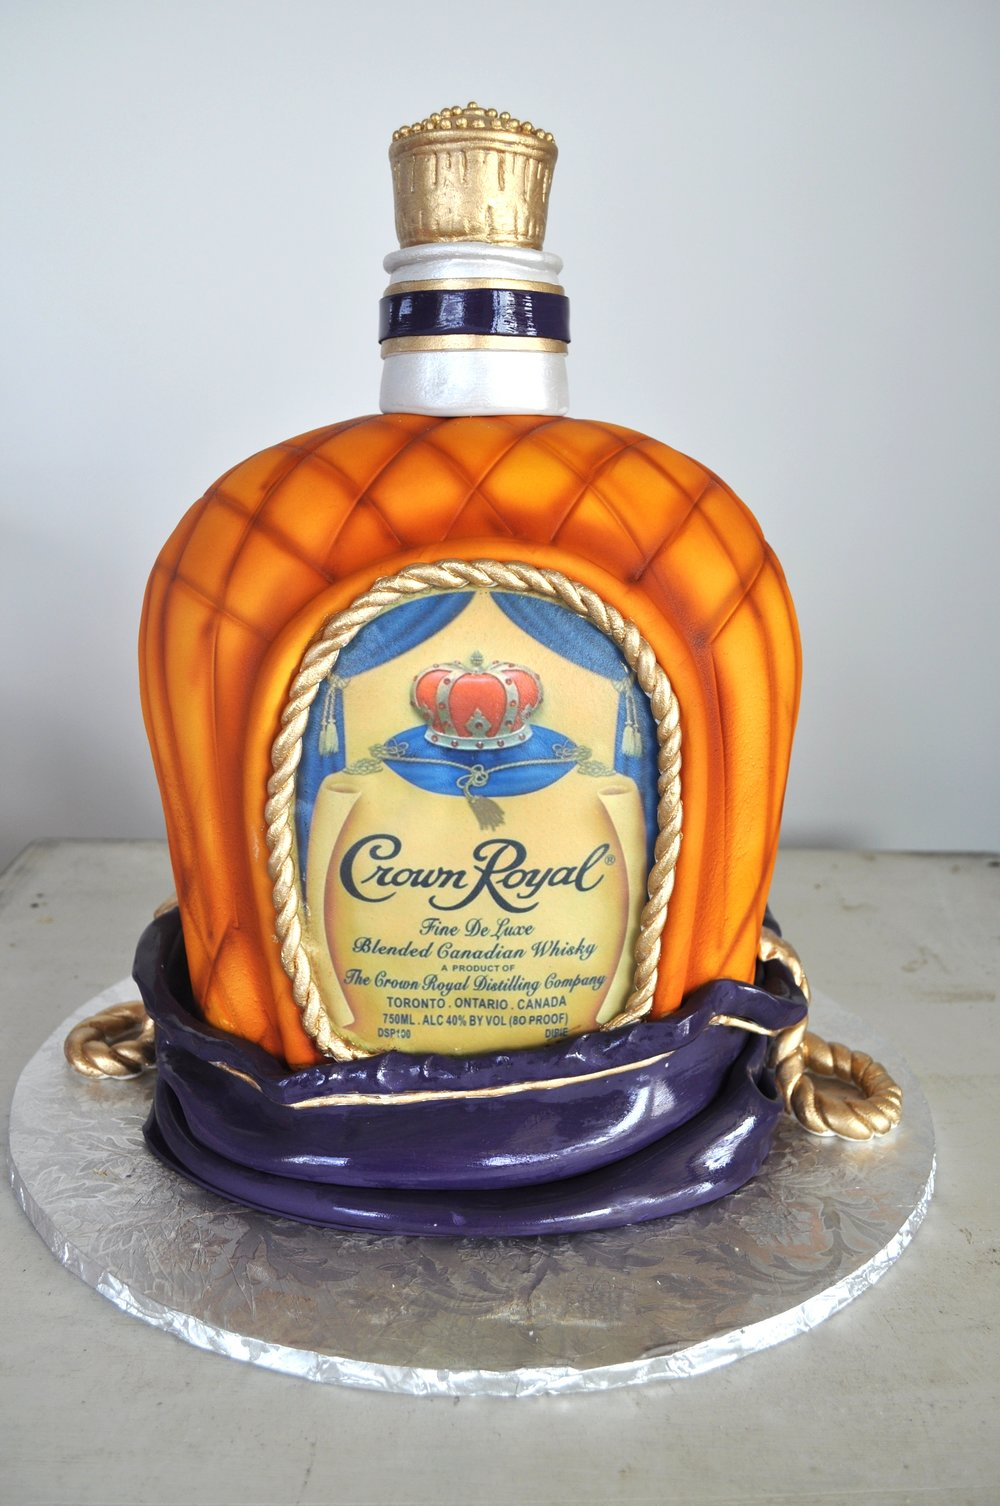 Standing Crown Royal Bottle.jpg